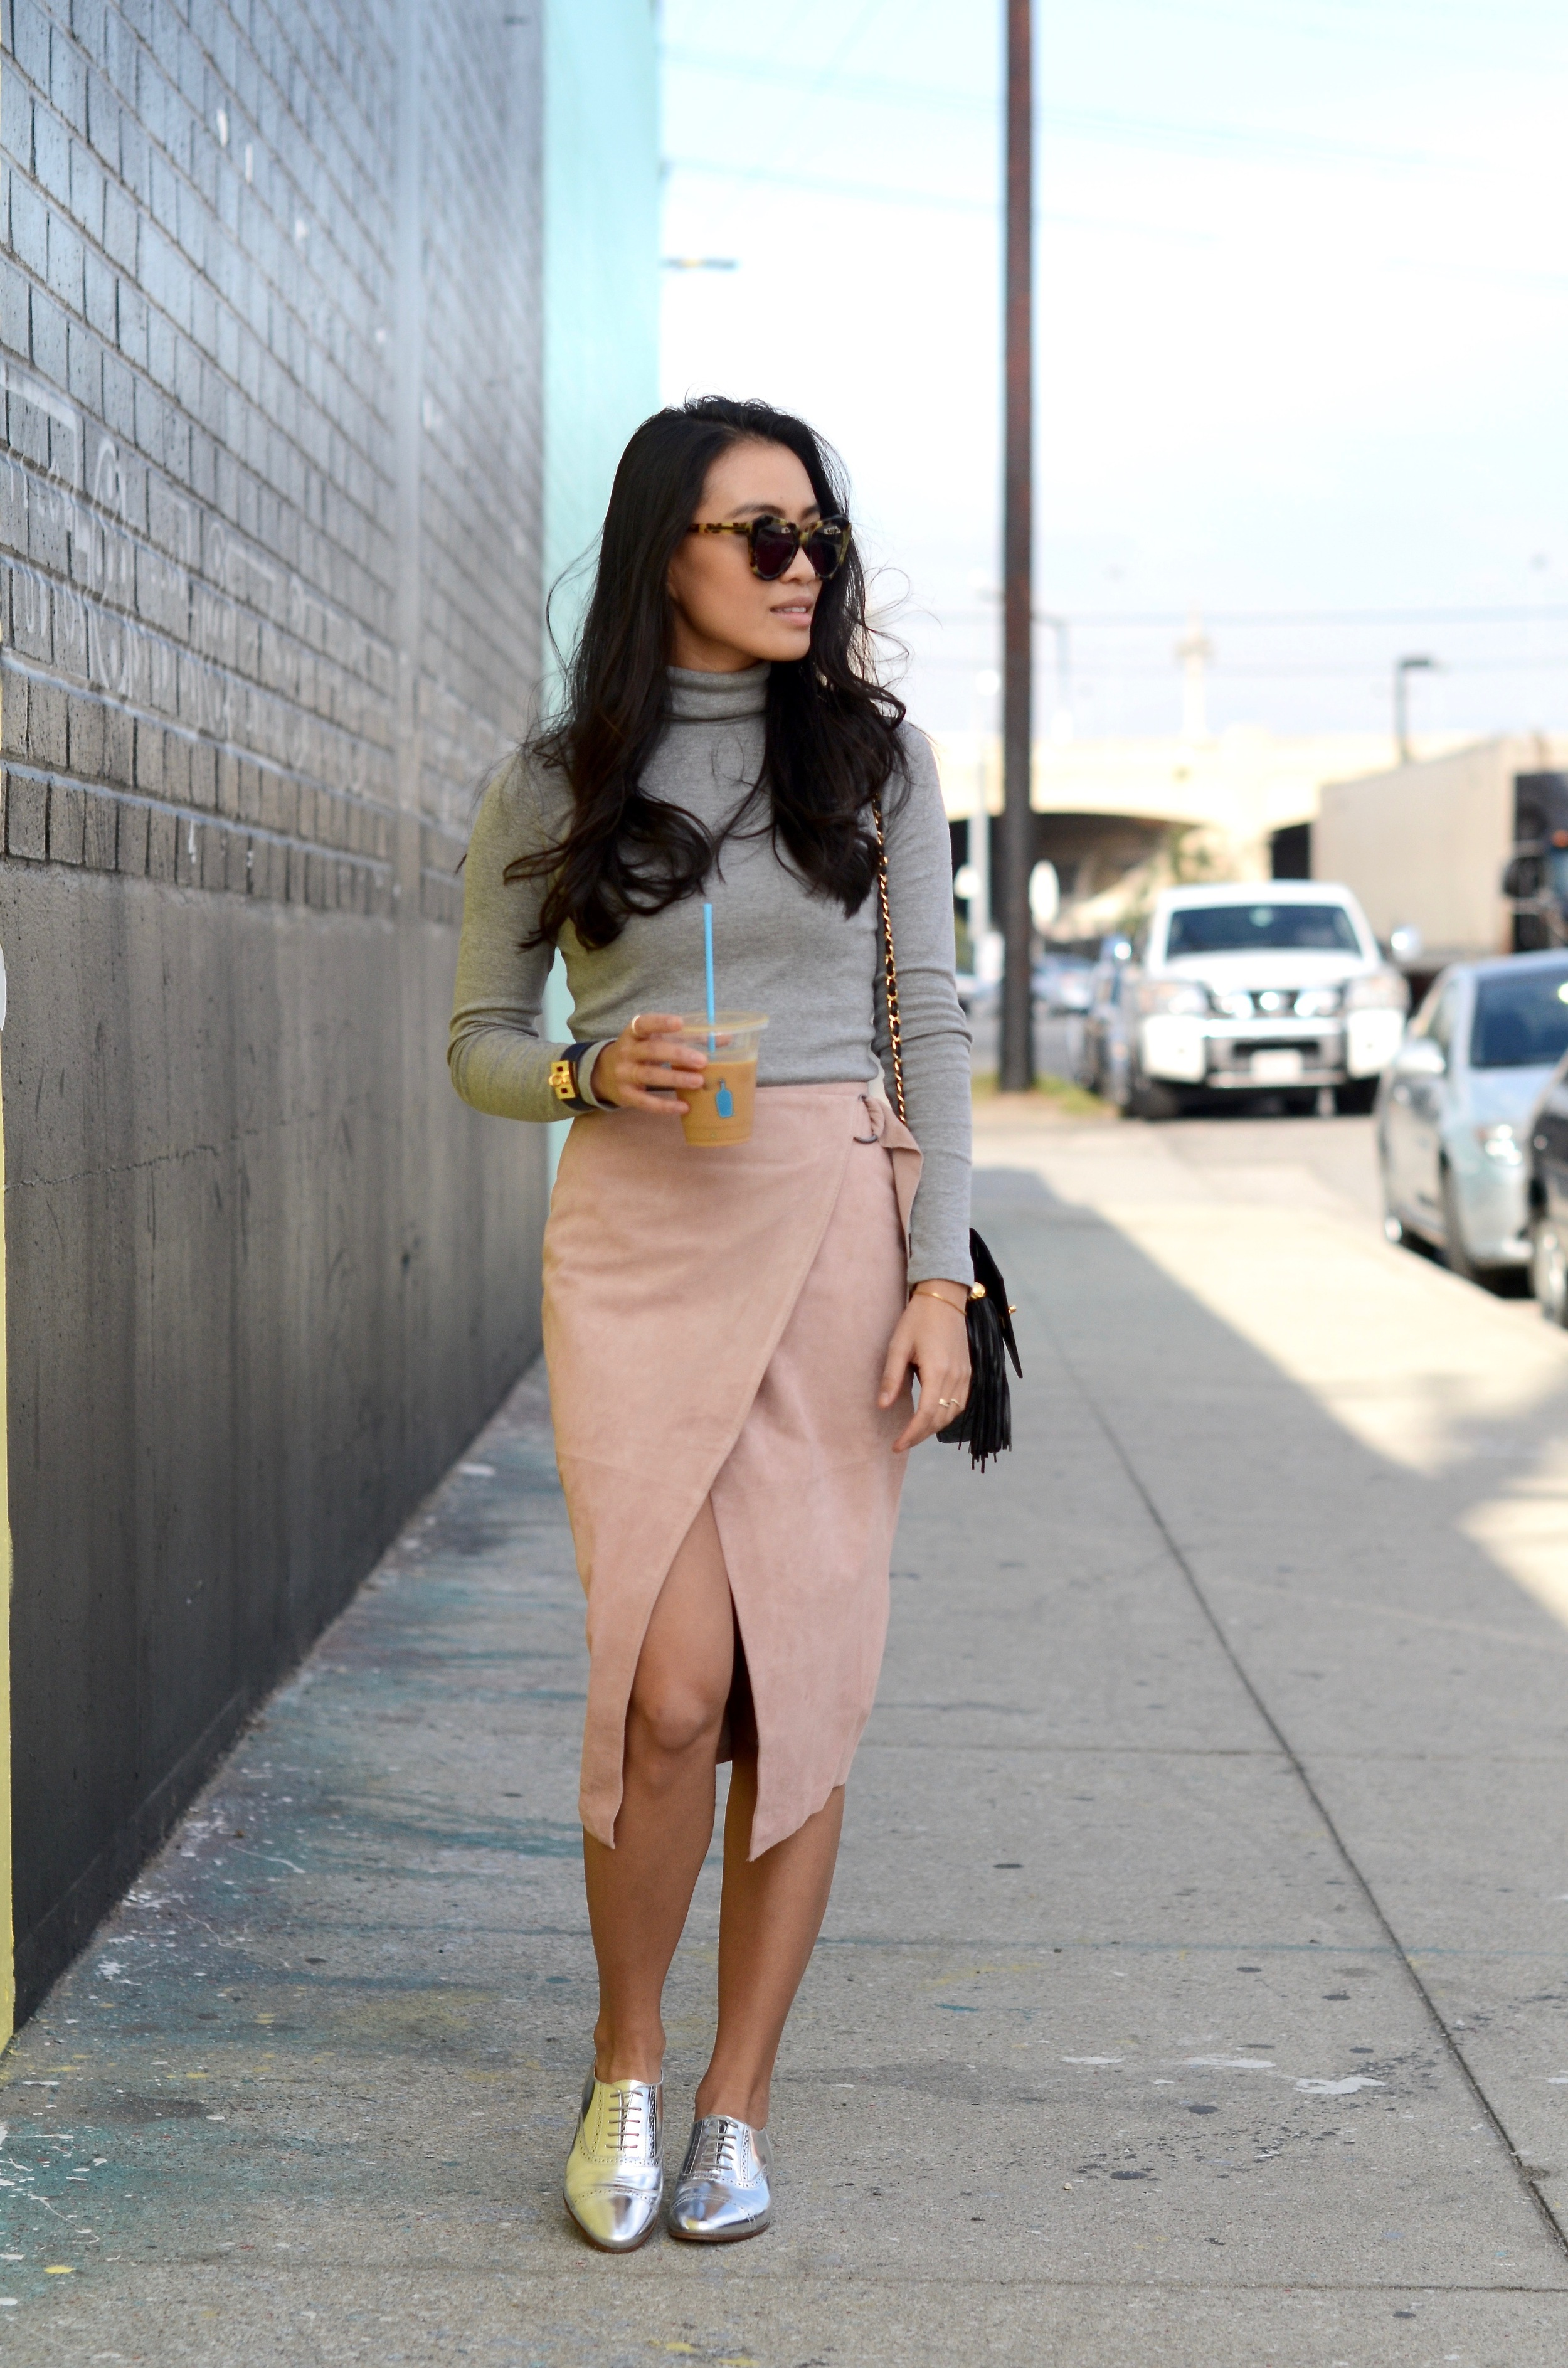 Just Goh With It-Outfit-Turtleneck-suede-wrap-slirt-vintage-chanel-metallic-oxfords-7.jpg